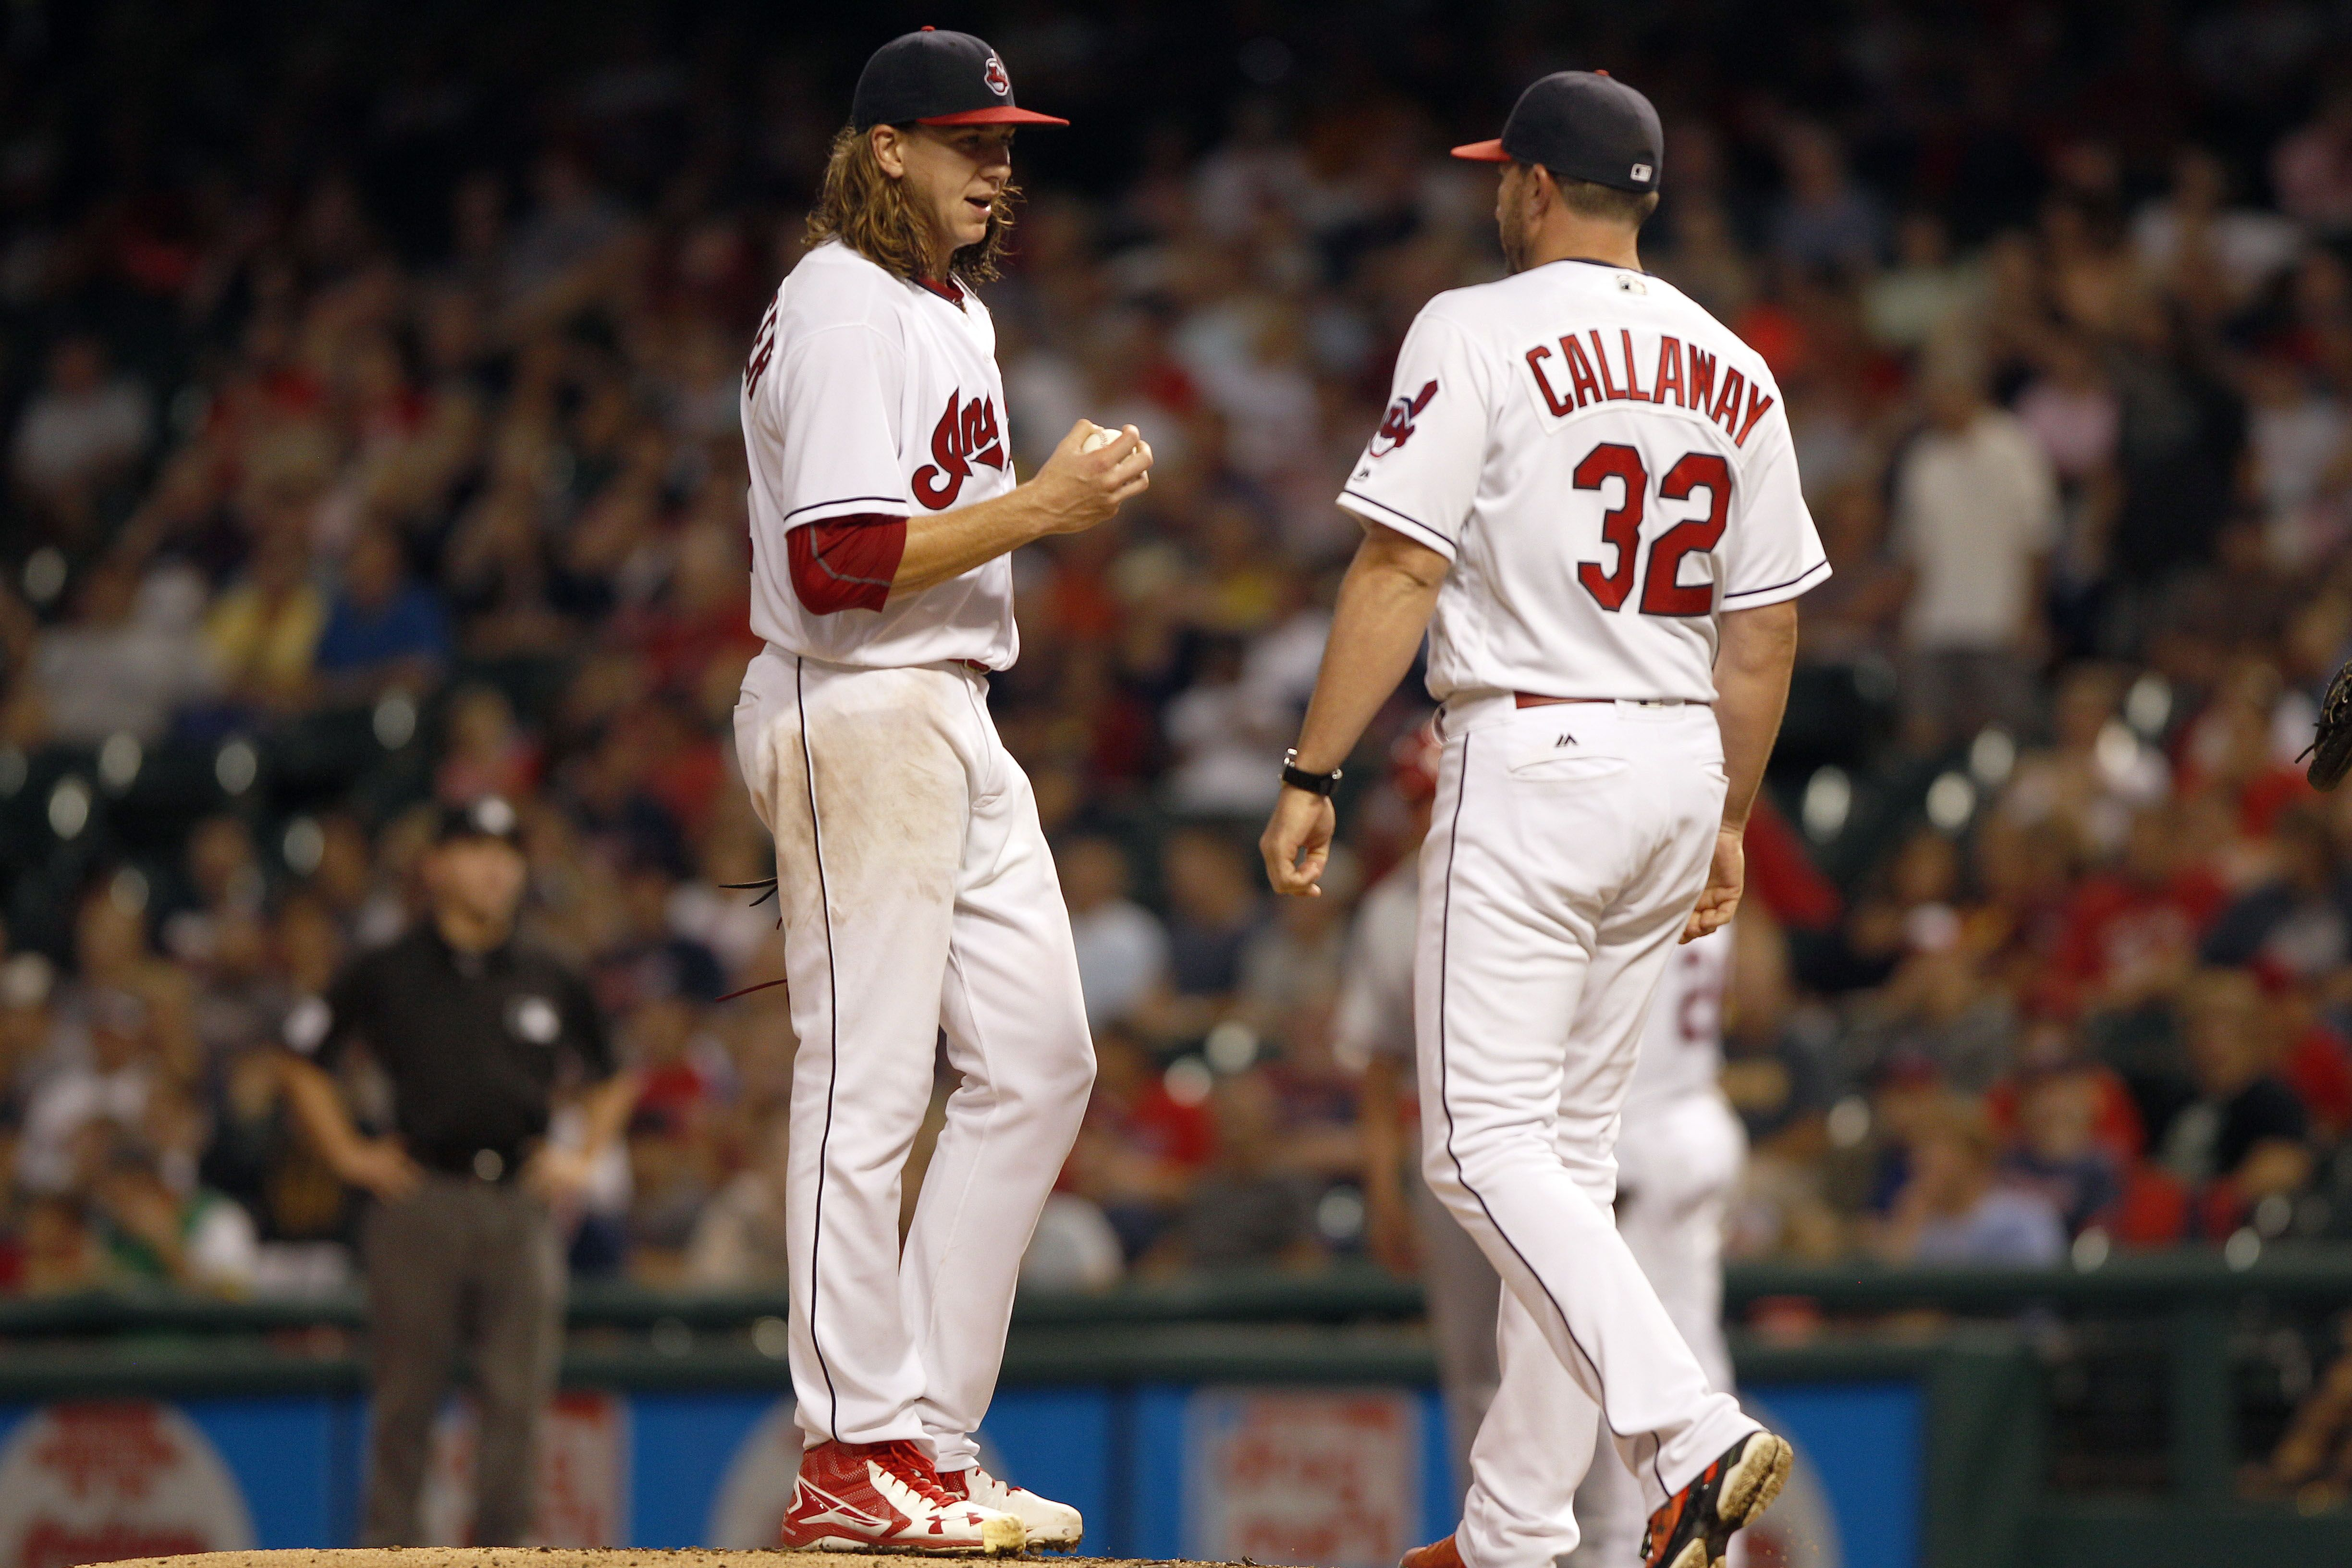 Cleveland Indians: Should Mickey Callaway return to the coaching staff?